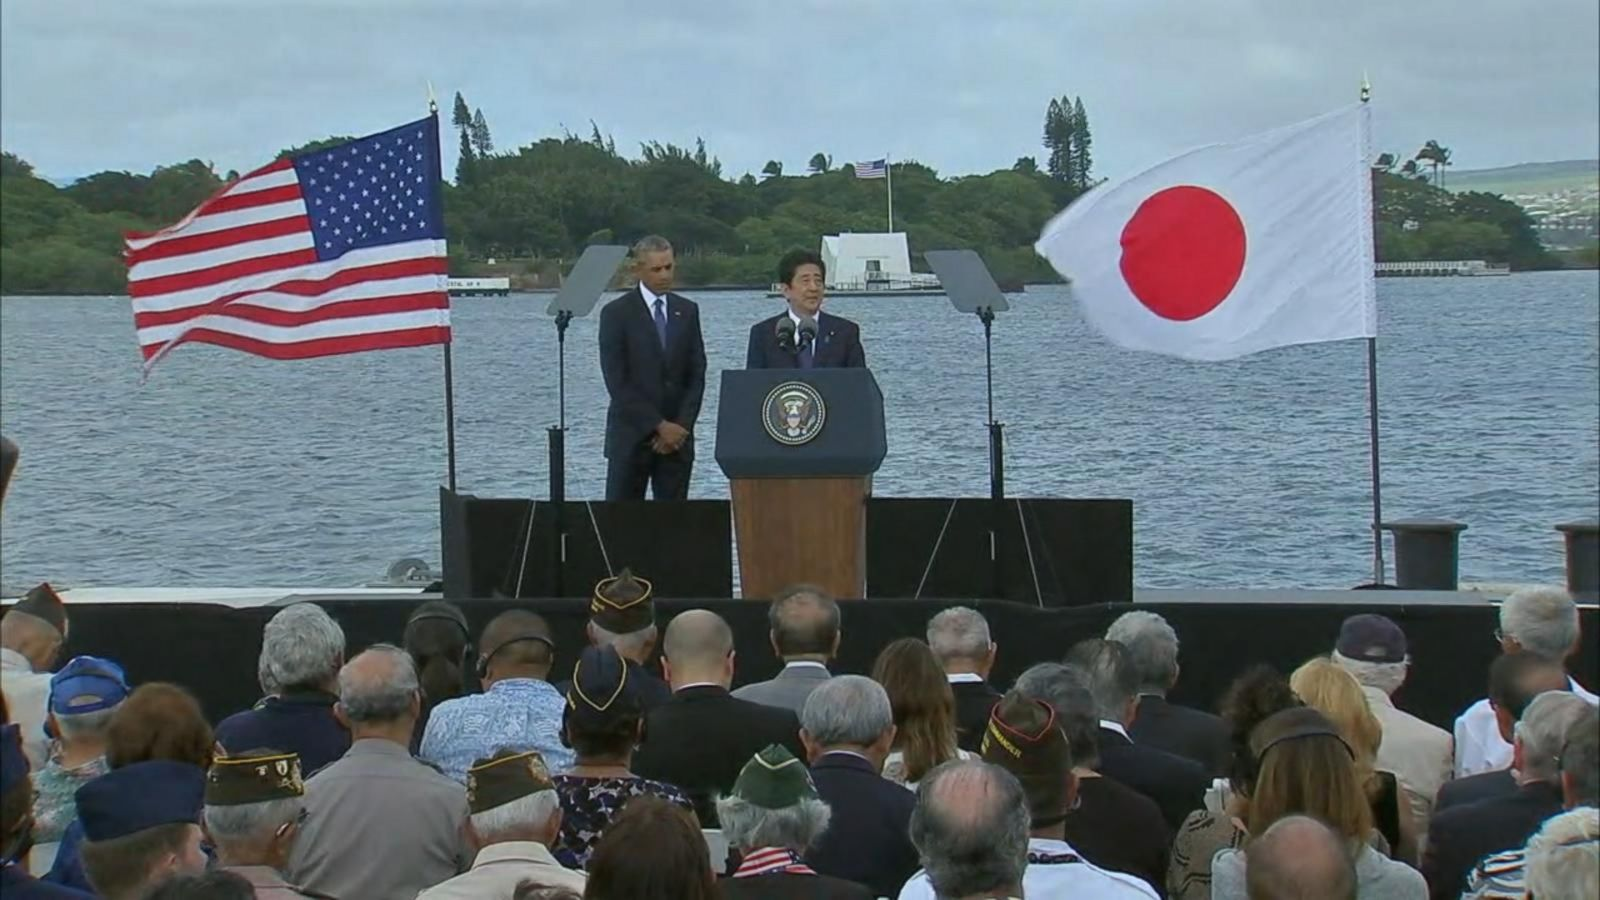 Pence promotes Trump's economic plans in Japan